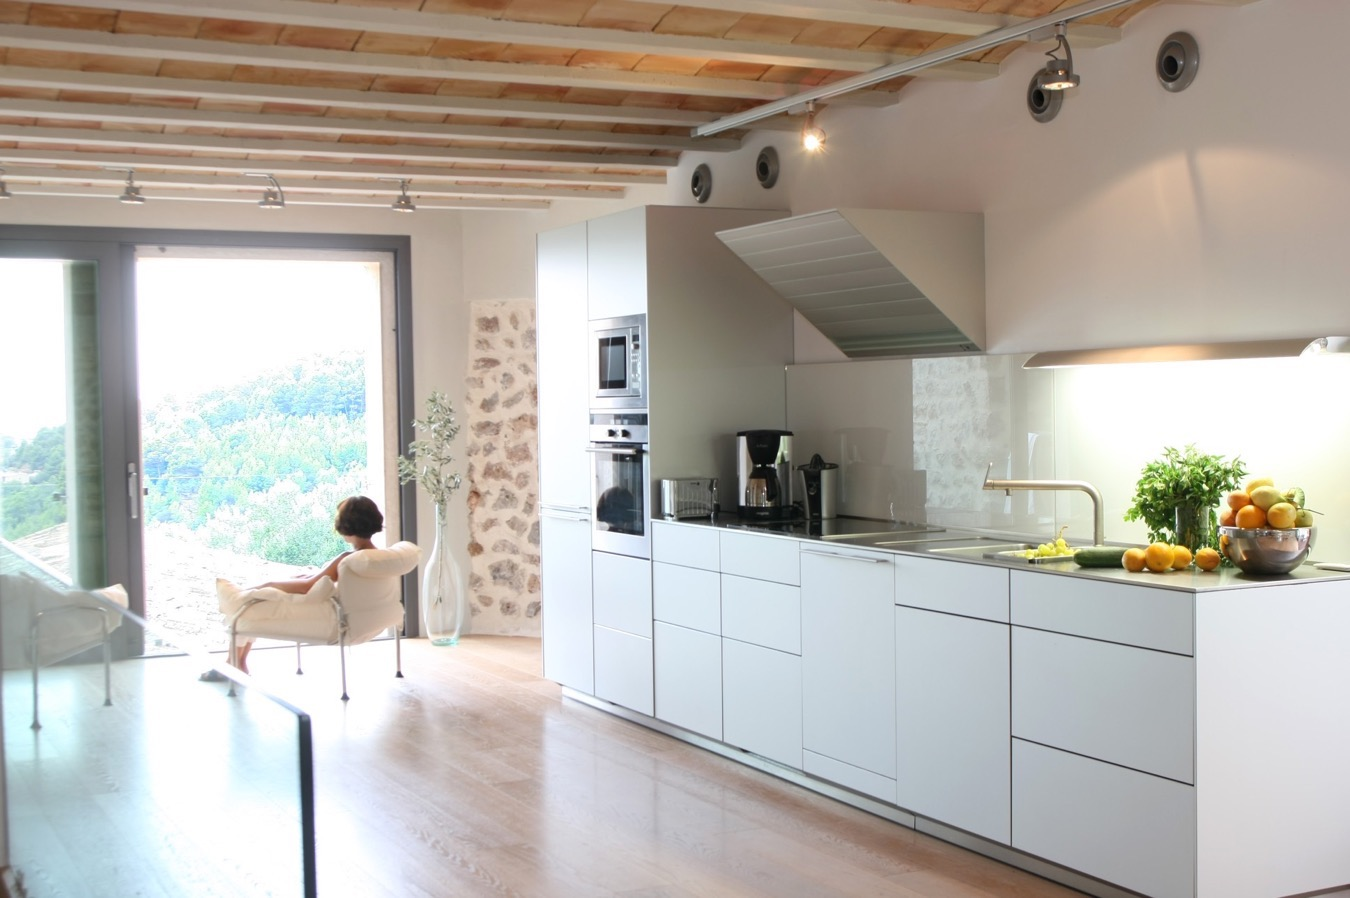 6 Bedrooms, Historic Country House, Vacation Rental, 7 Bathrooms, Soller Mallorca